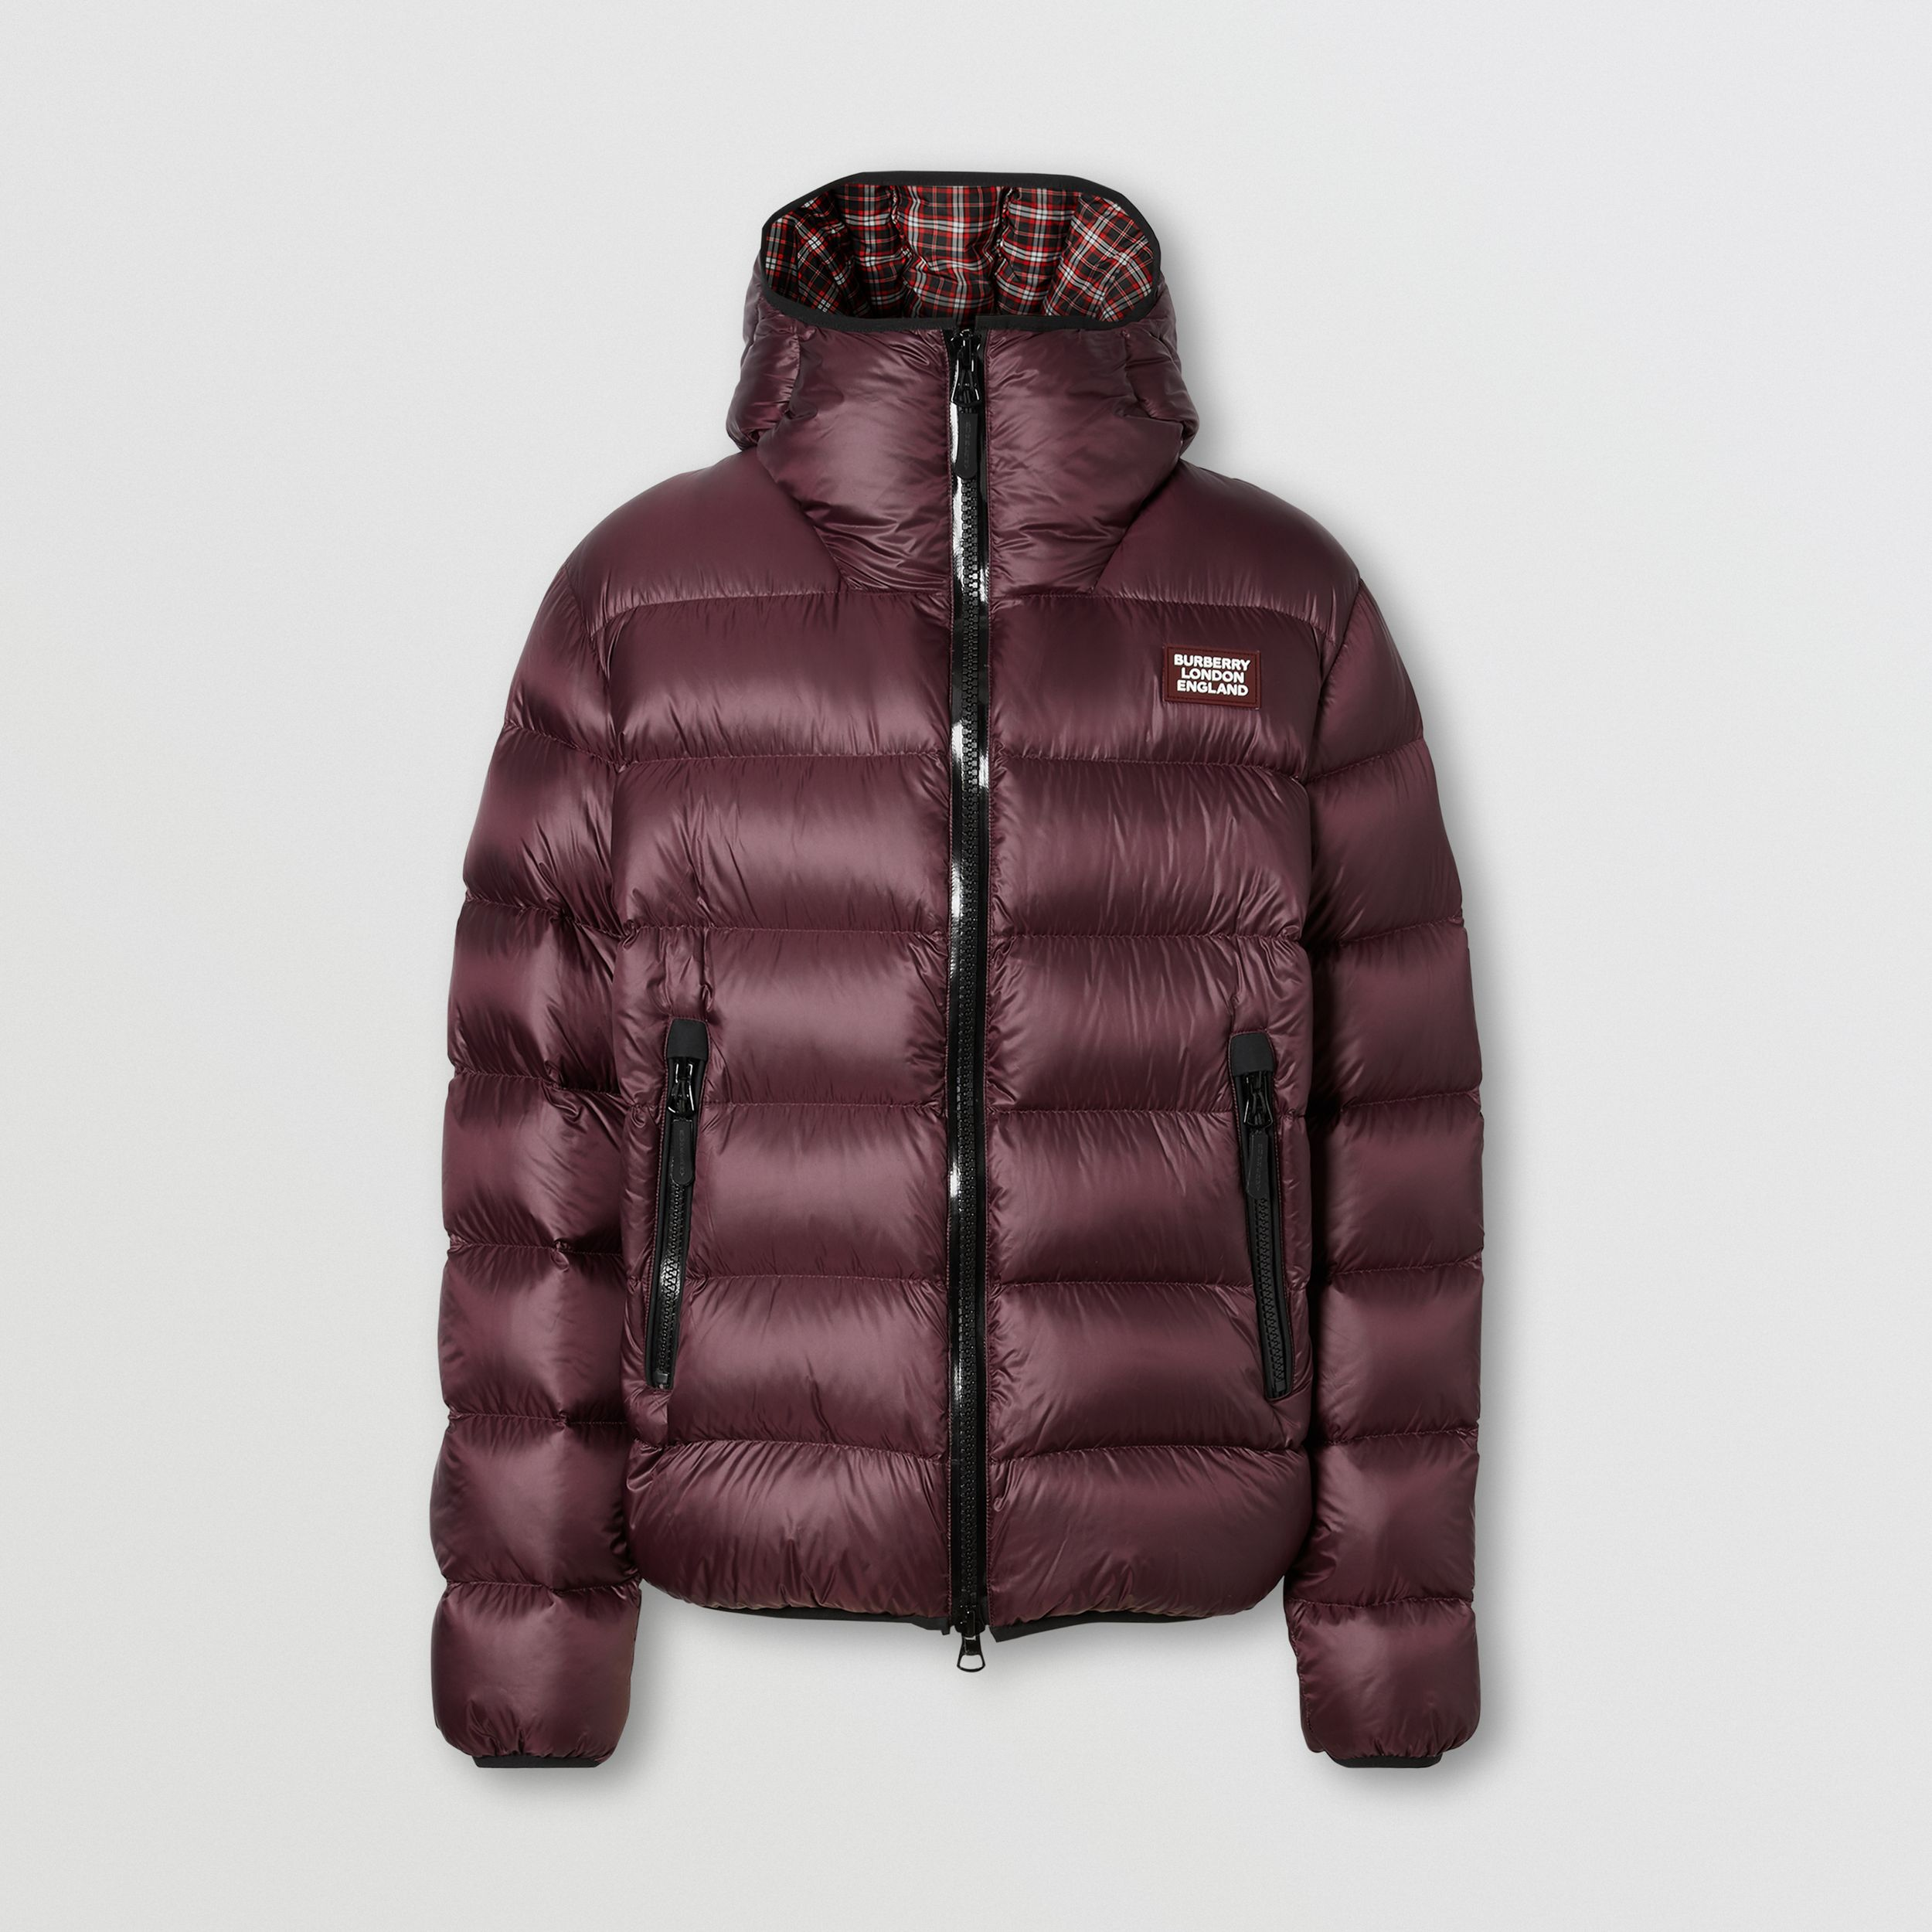 Logo Appliqué Hooded Puffer Jacket in Dark Plum | Burberry - 4